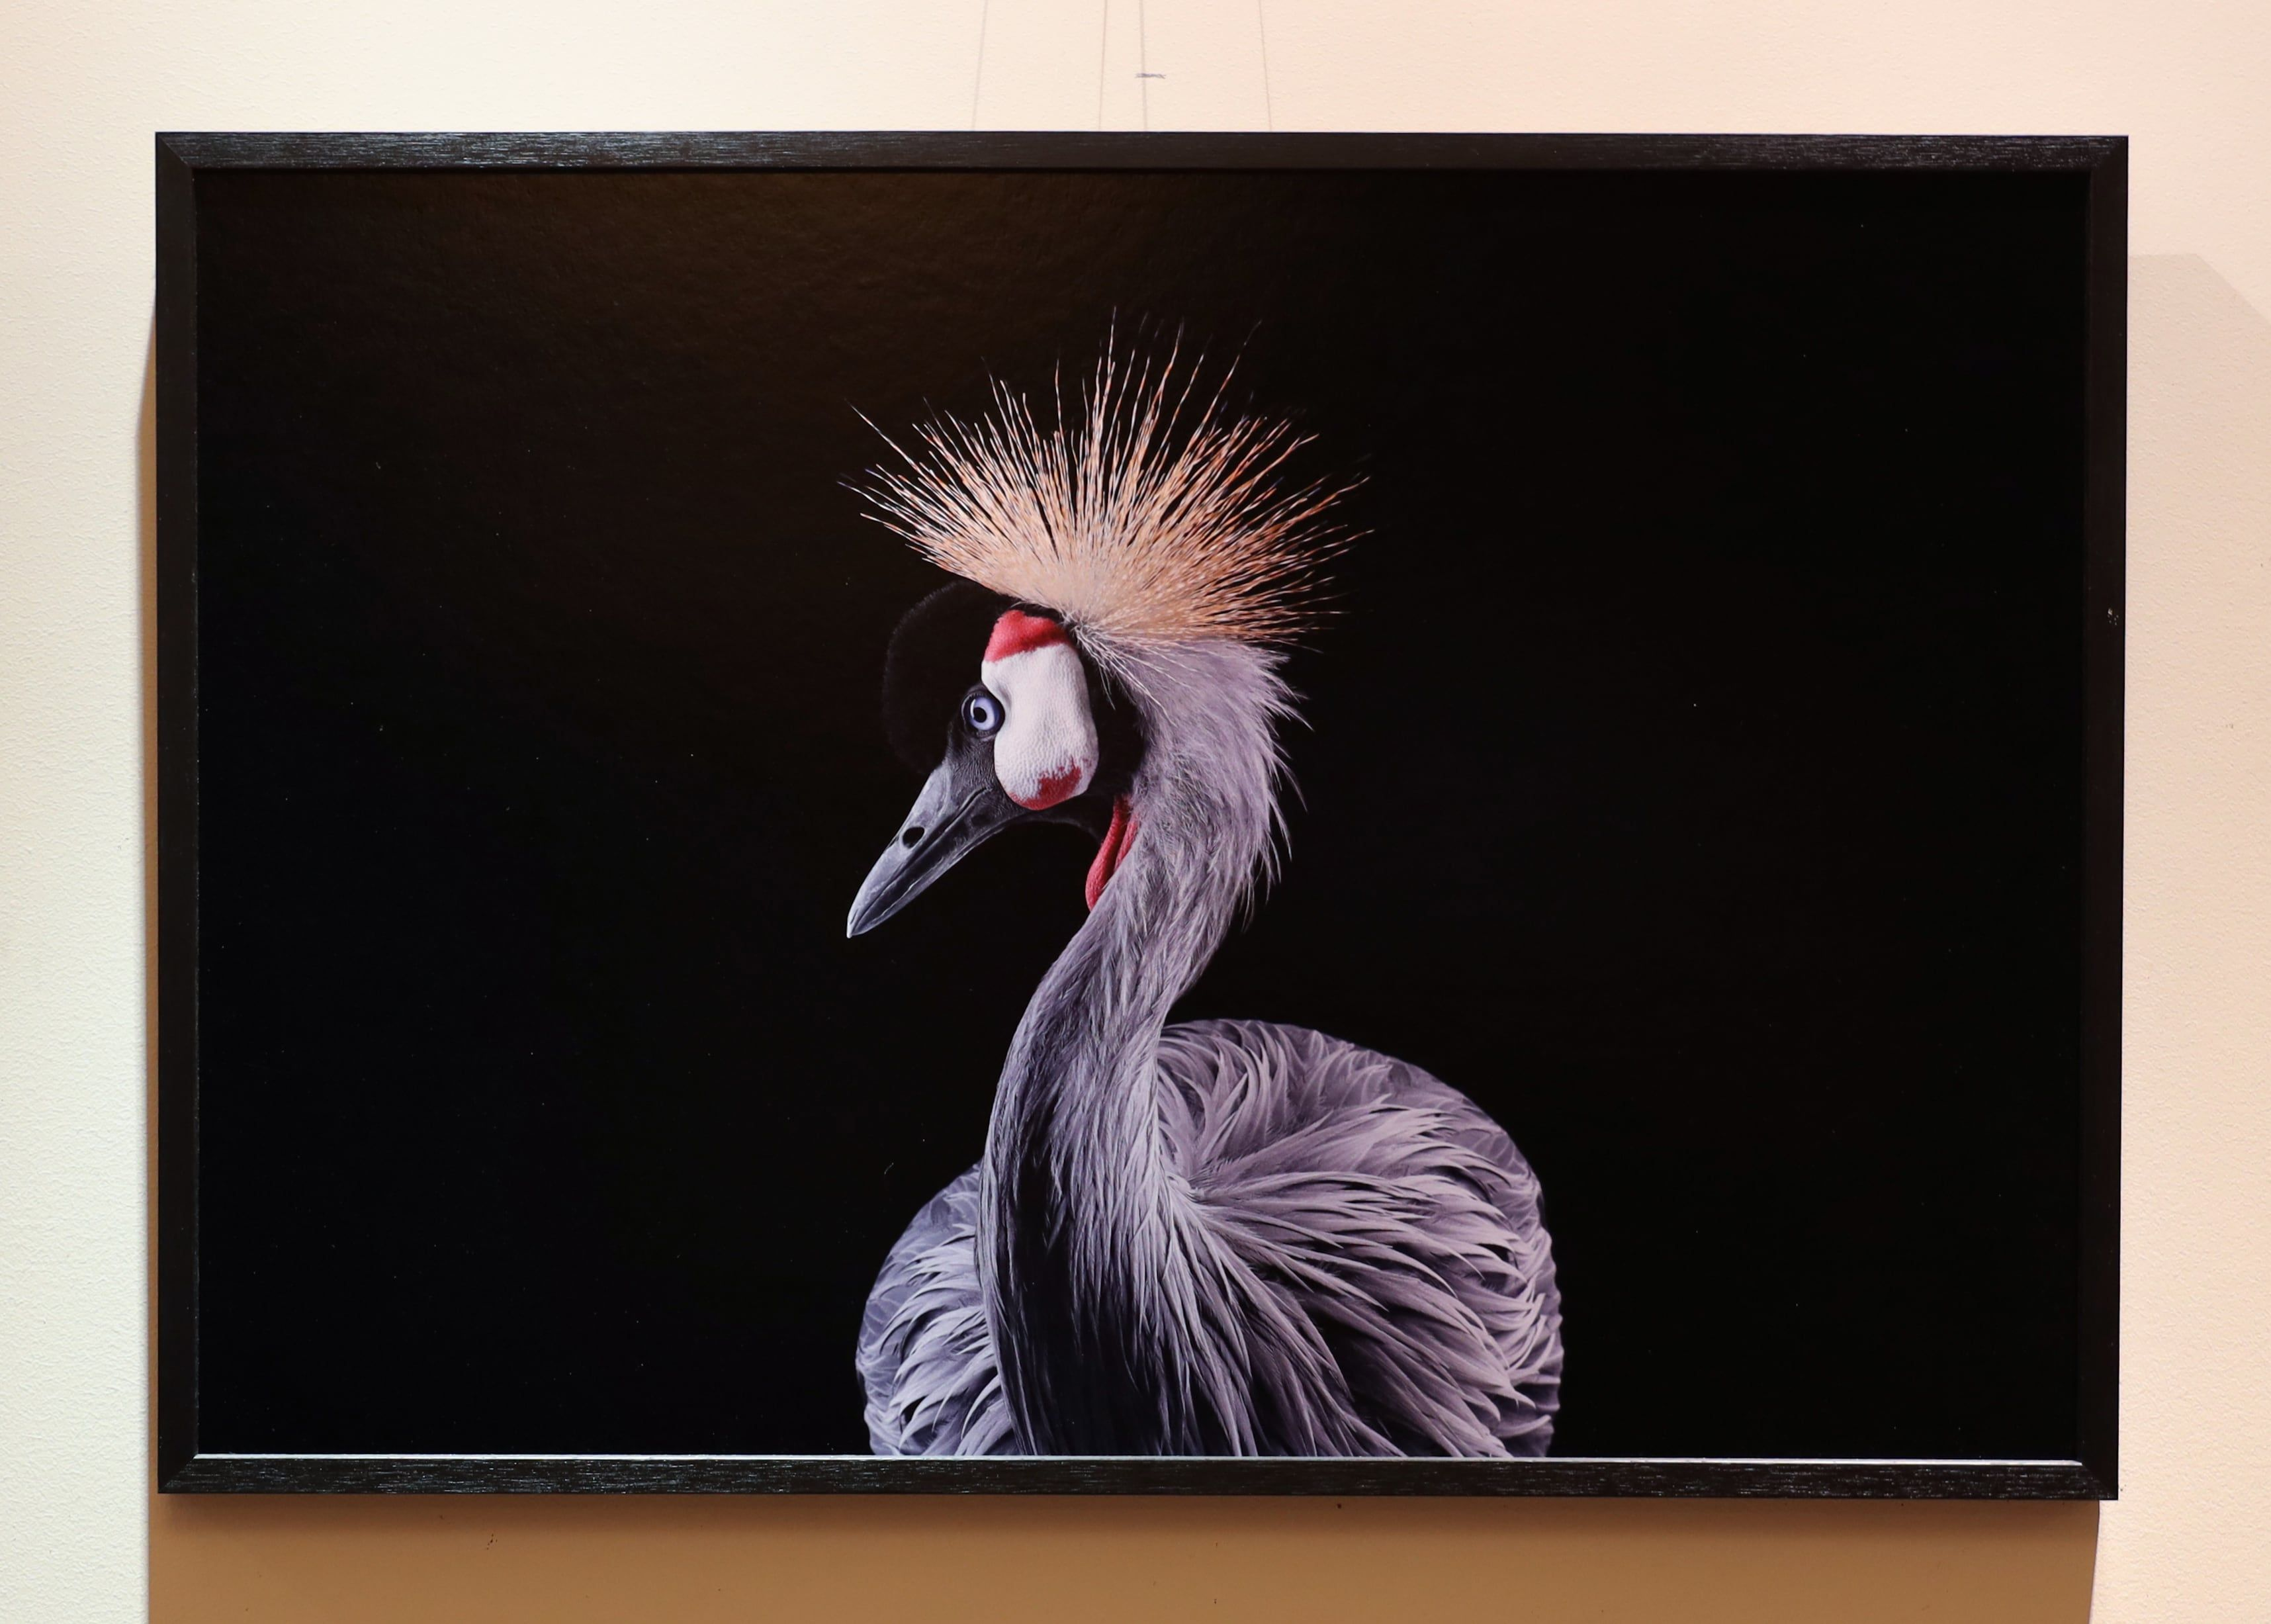 African Crowned Crane #1, Los Angeles, CA, 2011,Brad Wilson,Photographie, detail 1